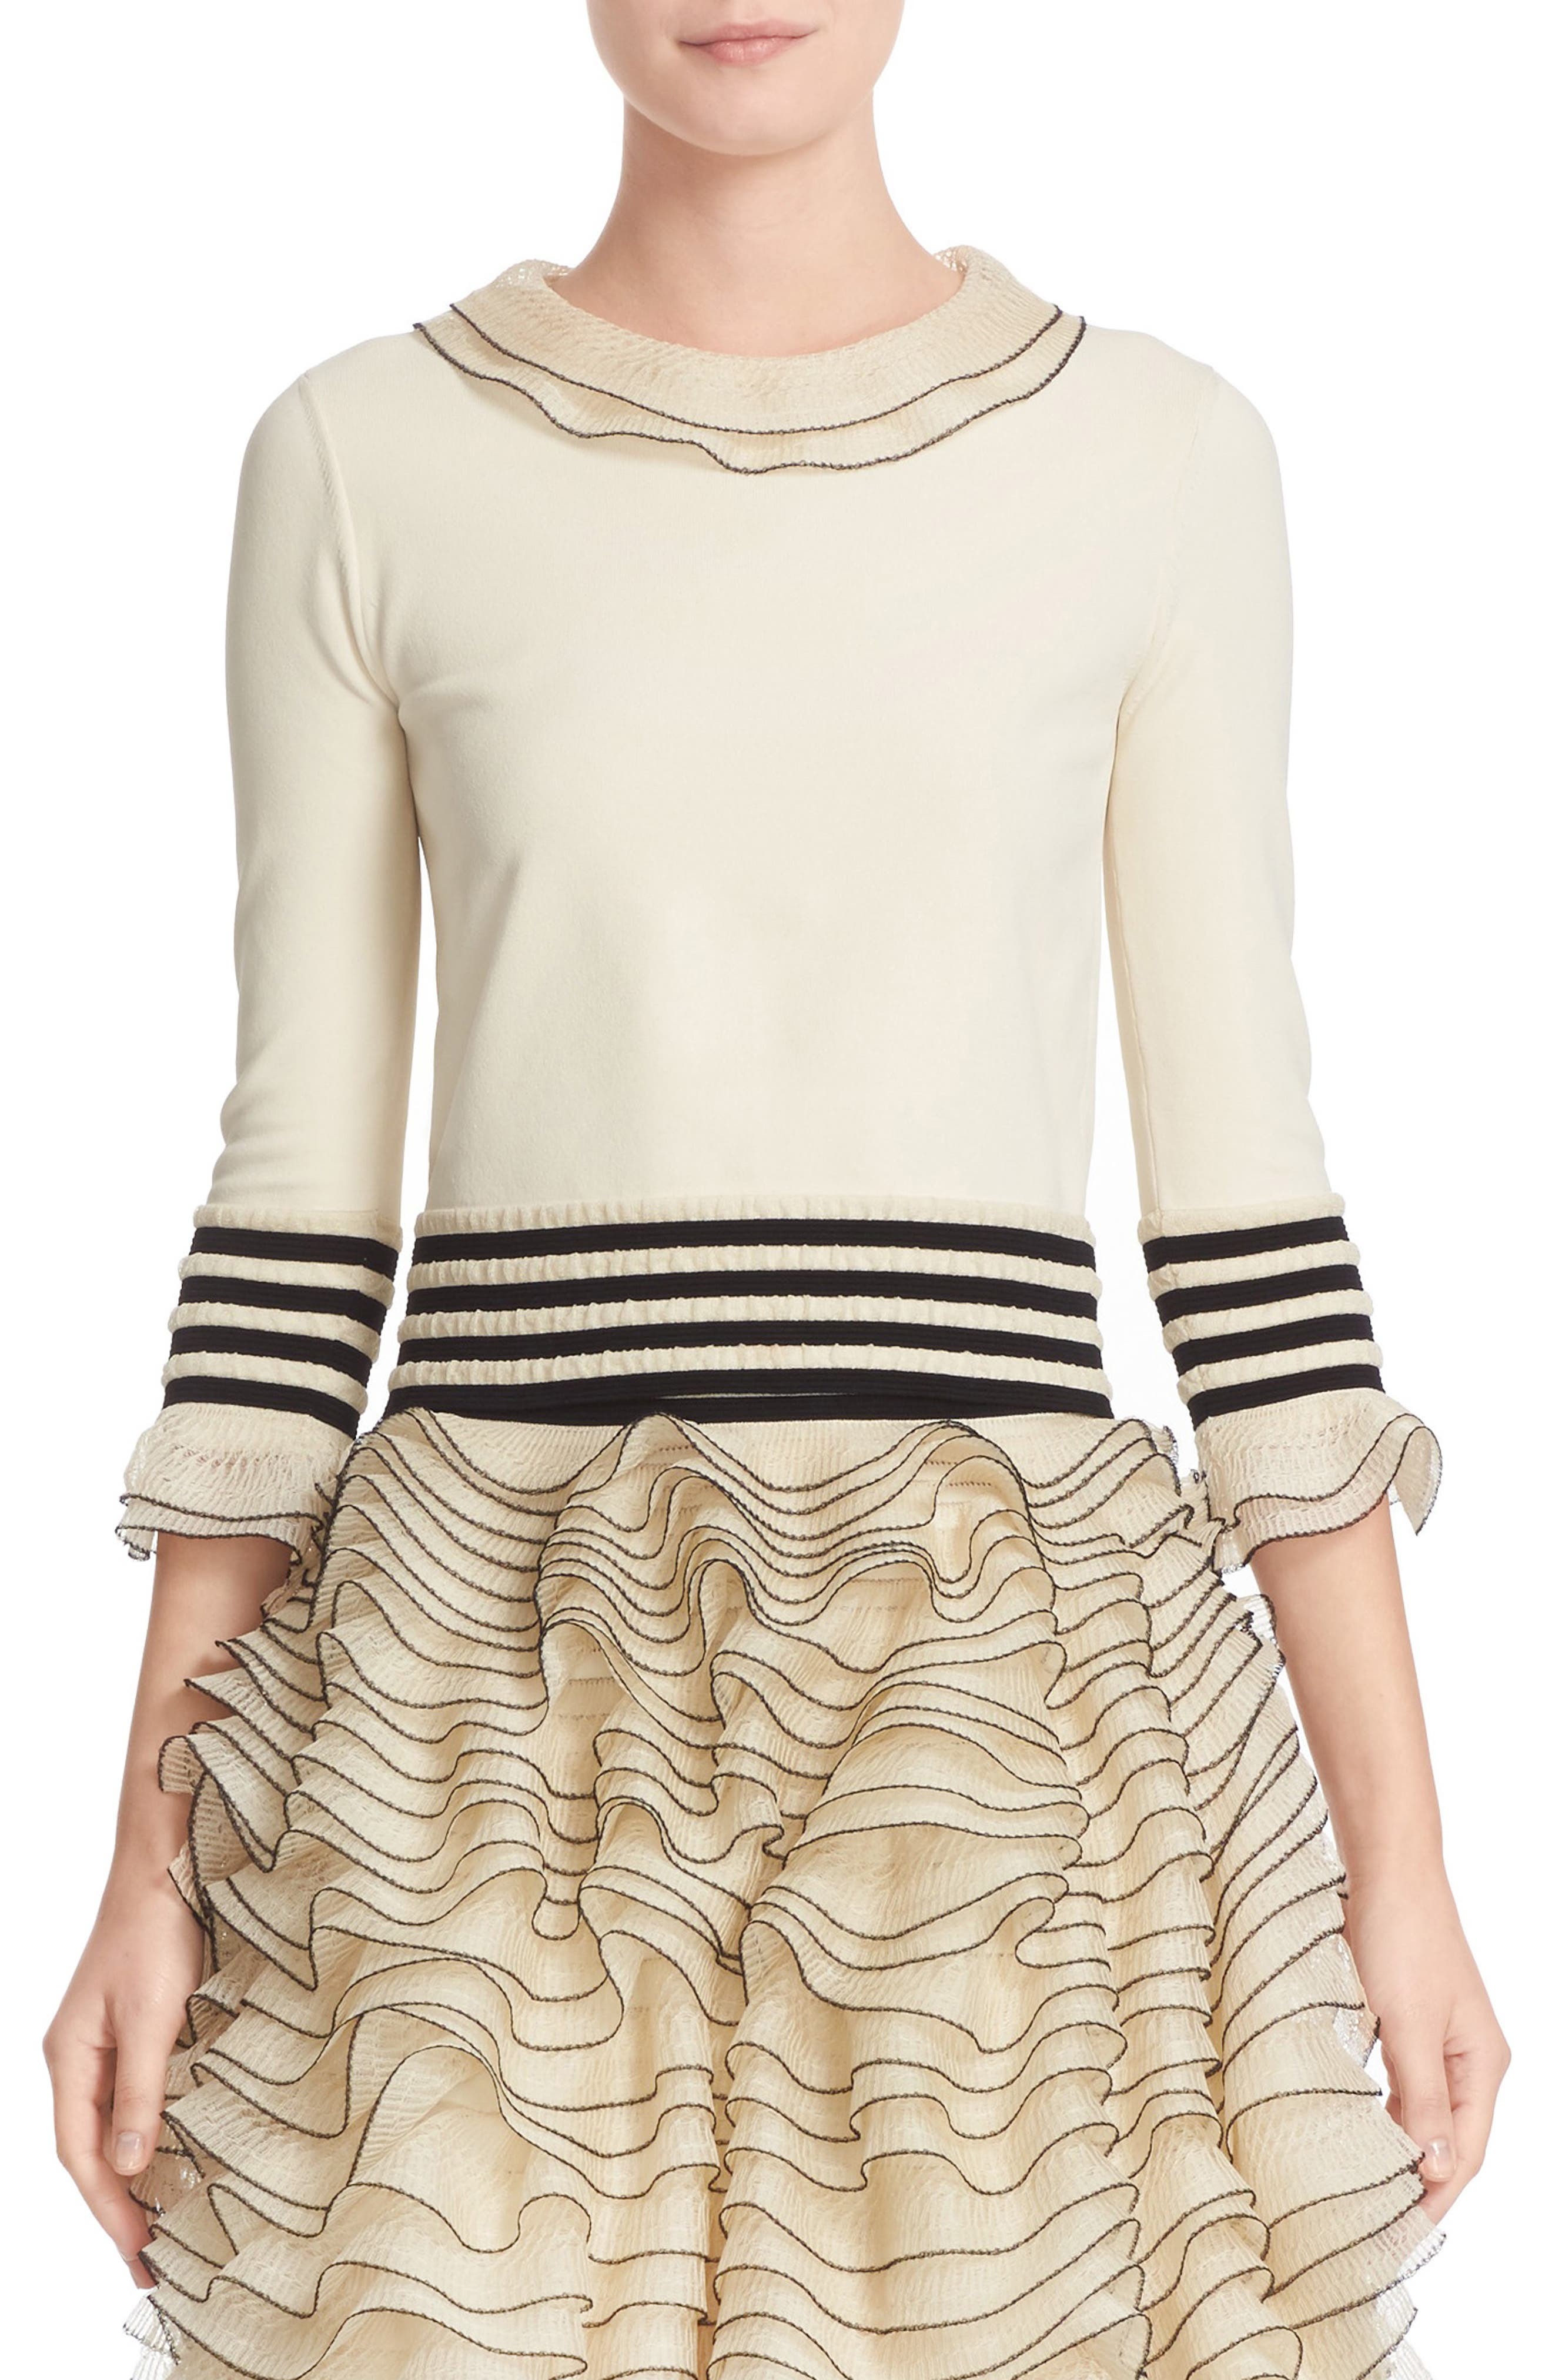 ALEXANDER MCQUEEN Graphic Frill Knit Top